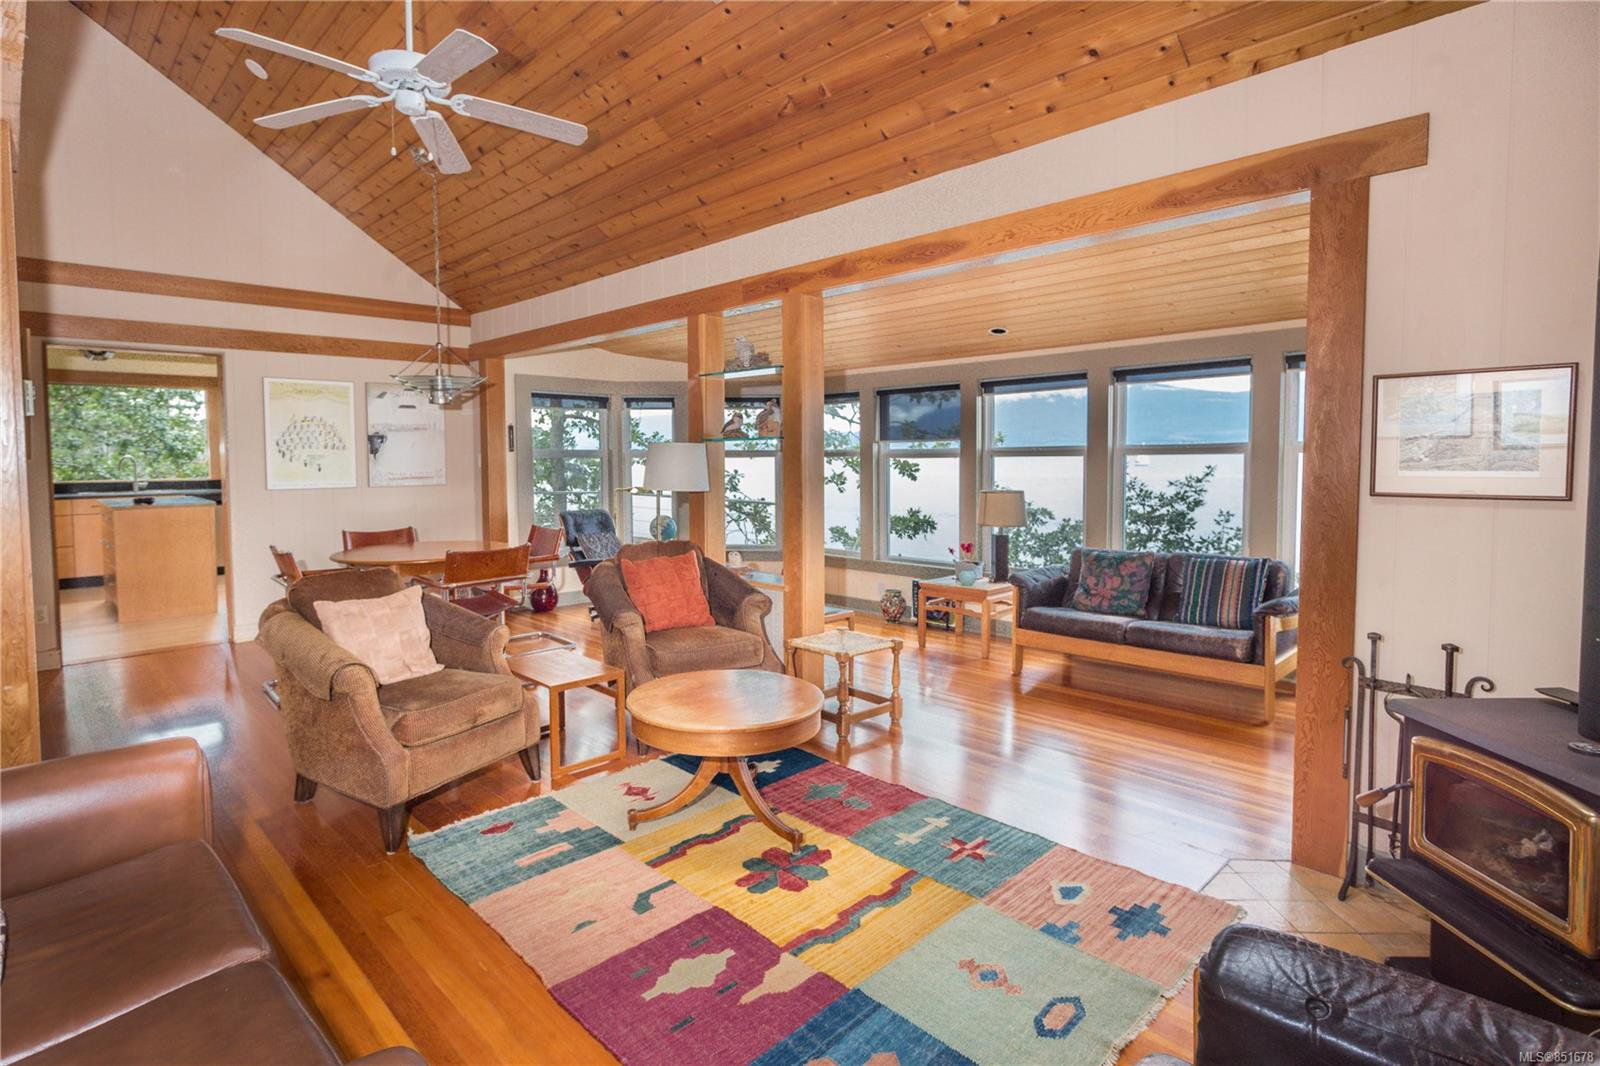 Photo 10: Photos: 262 Forbes Dr in : Isl Thetis Island House for sale (Islands)  : MLS®# 851678